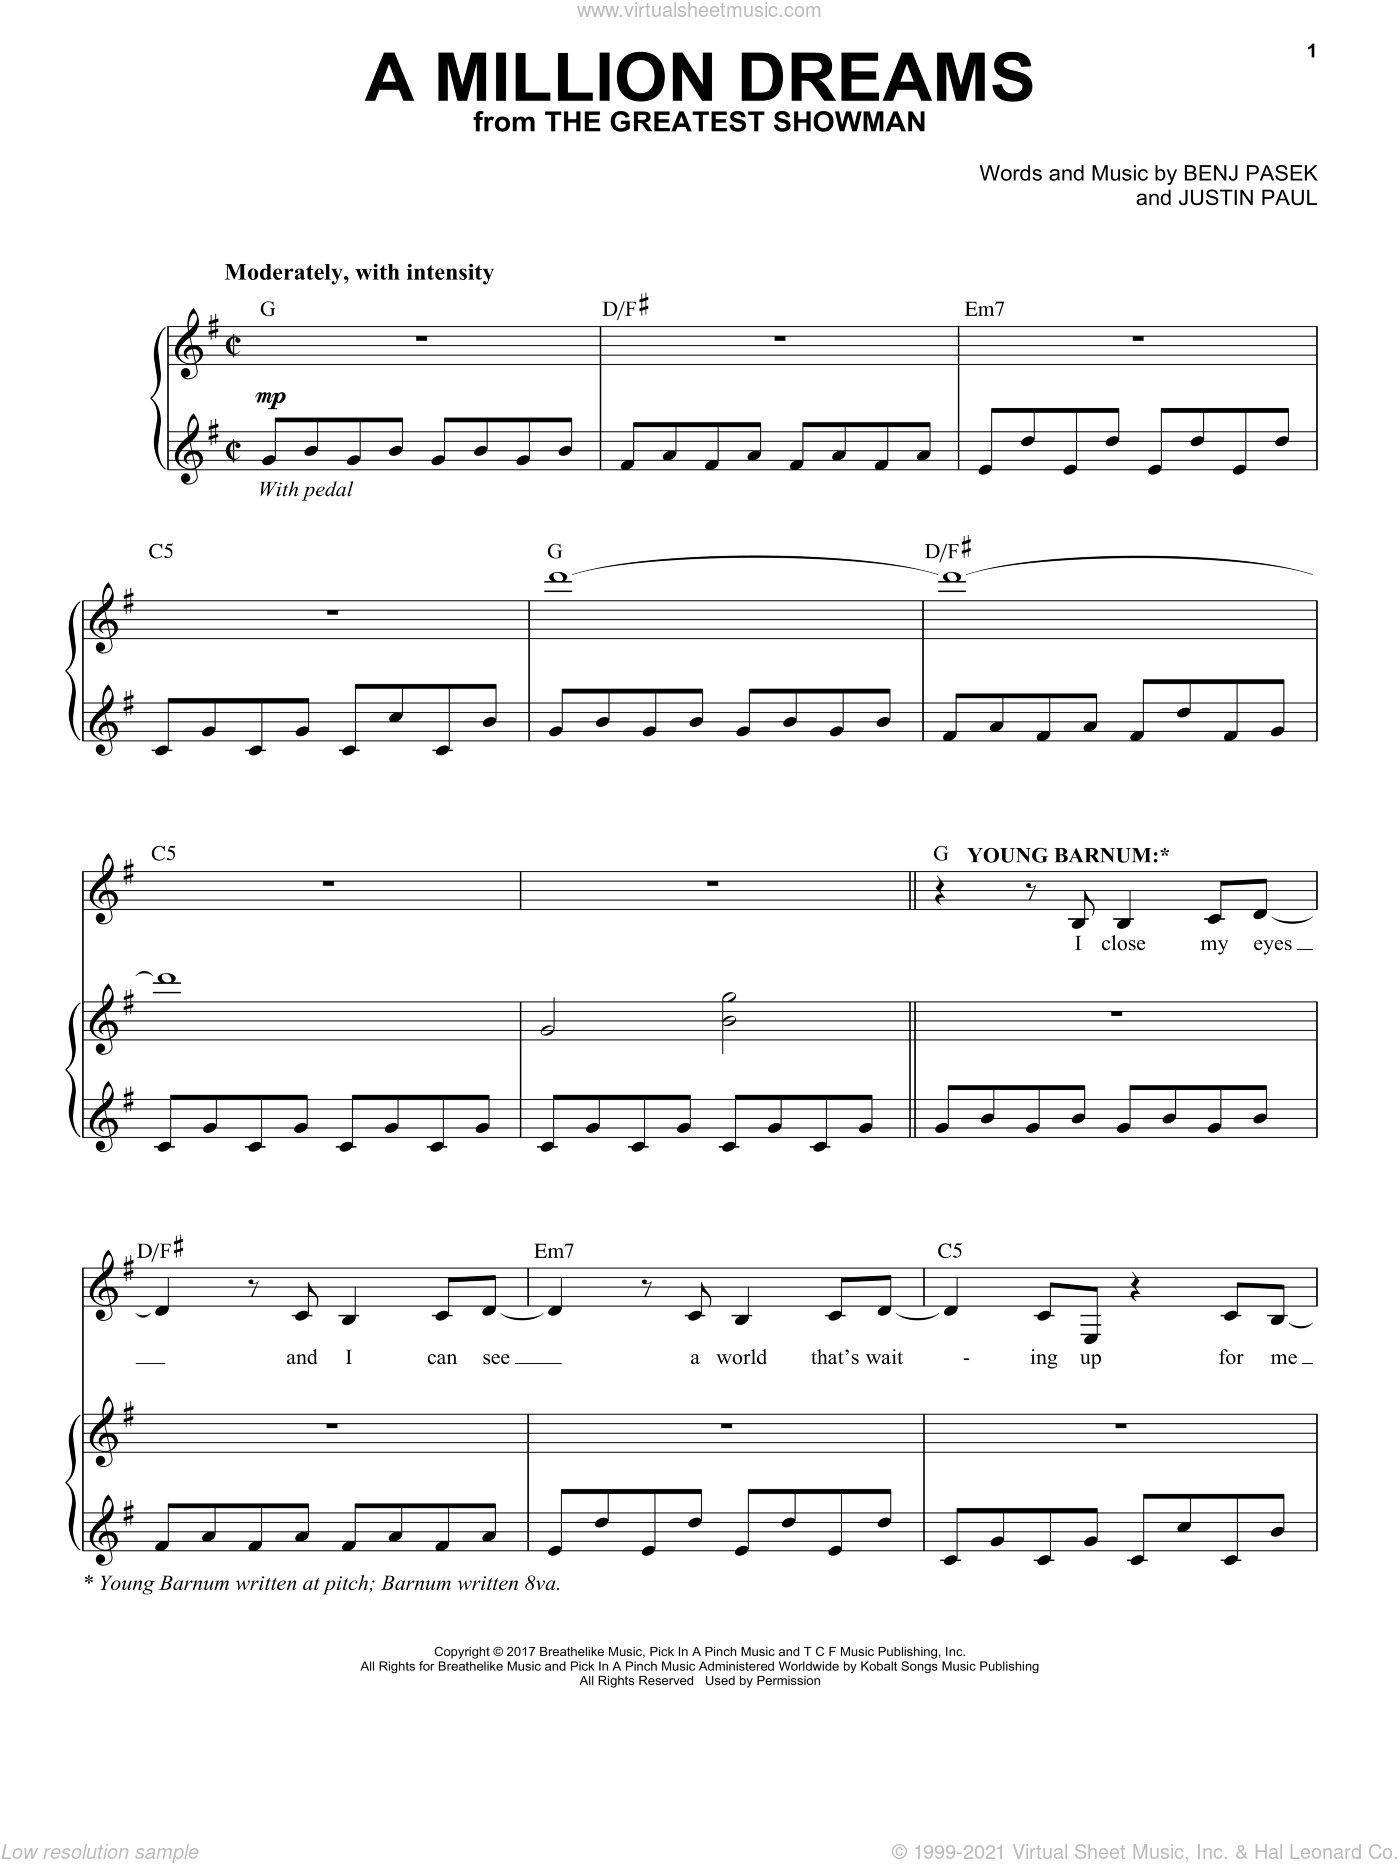 A Million Dreams (from The Greatest Showman) sheet music for voice and piano by Justin Paul, Benj Pasek and Pasek & Paul, intermediate skill level